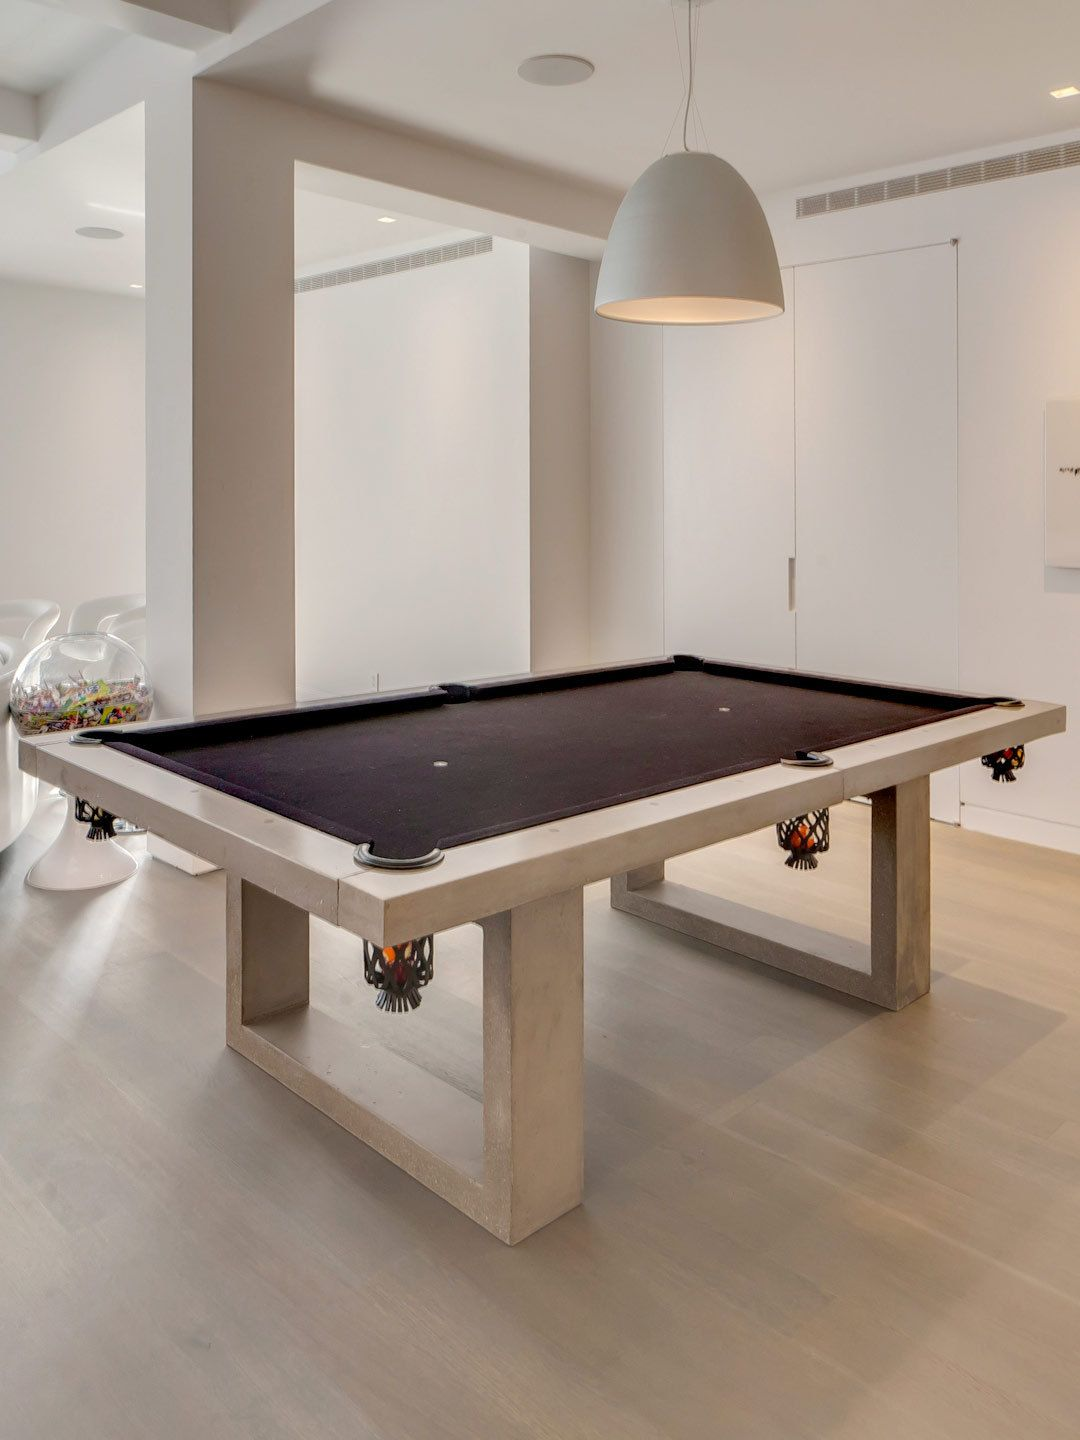 Concrete Pool Table By James DeWulf